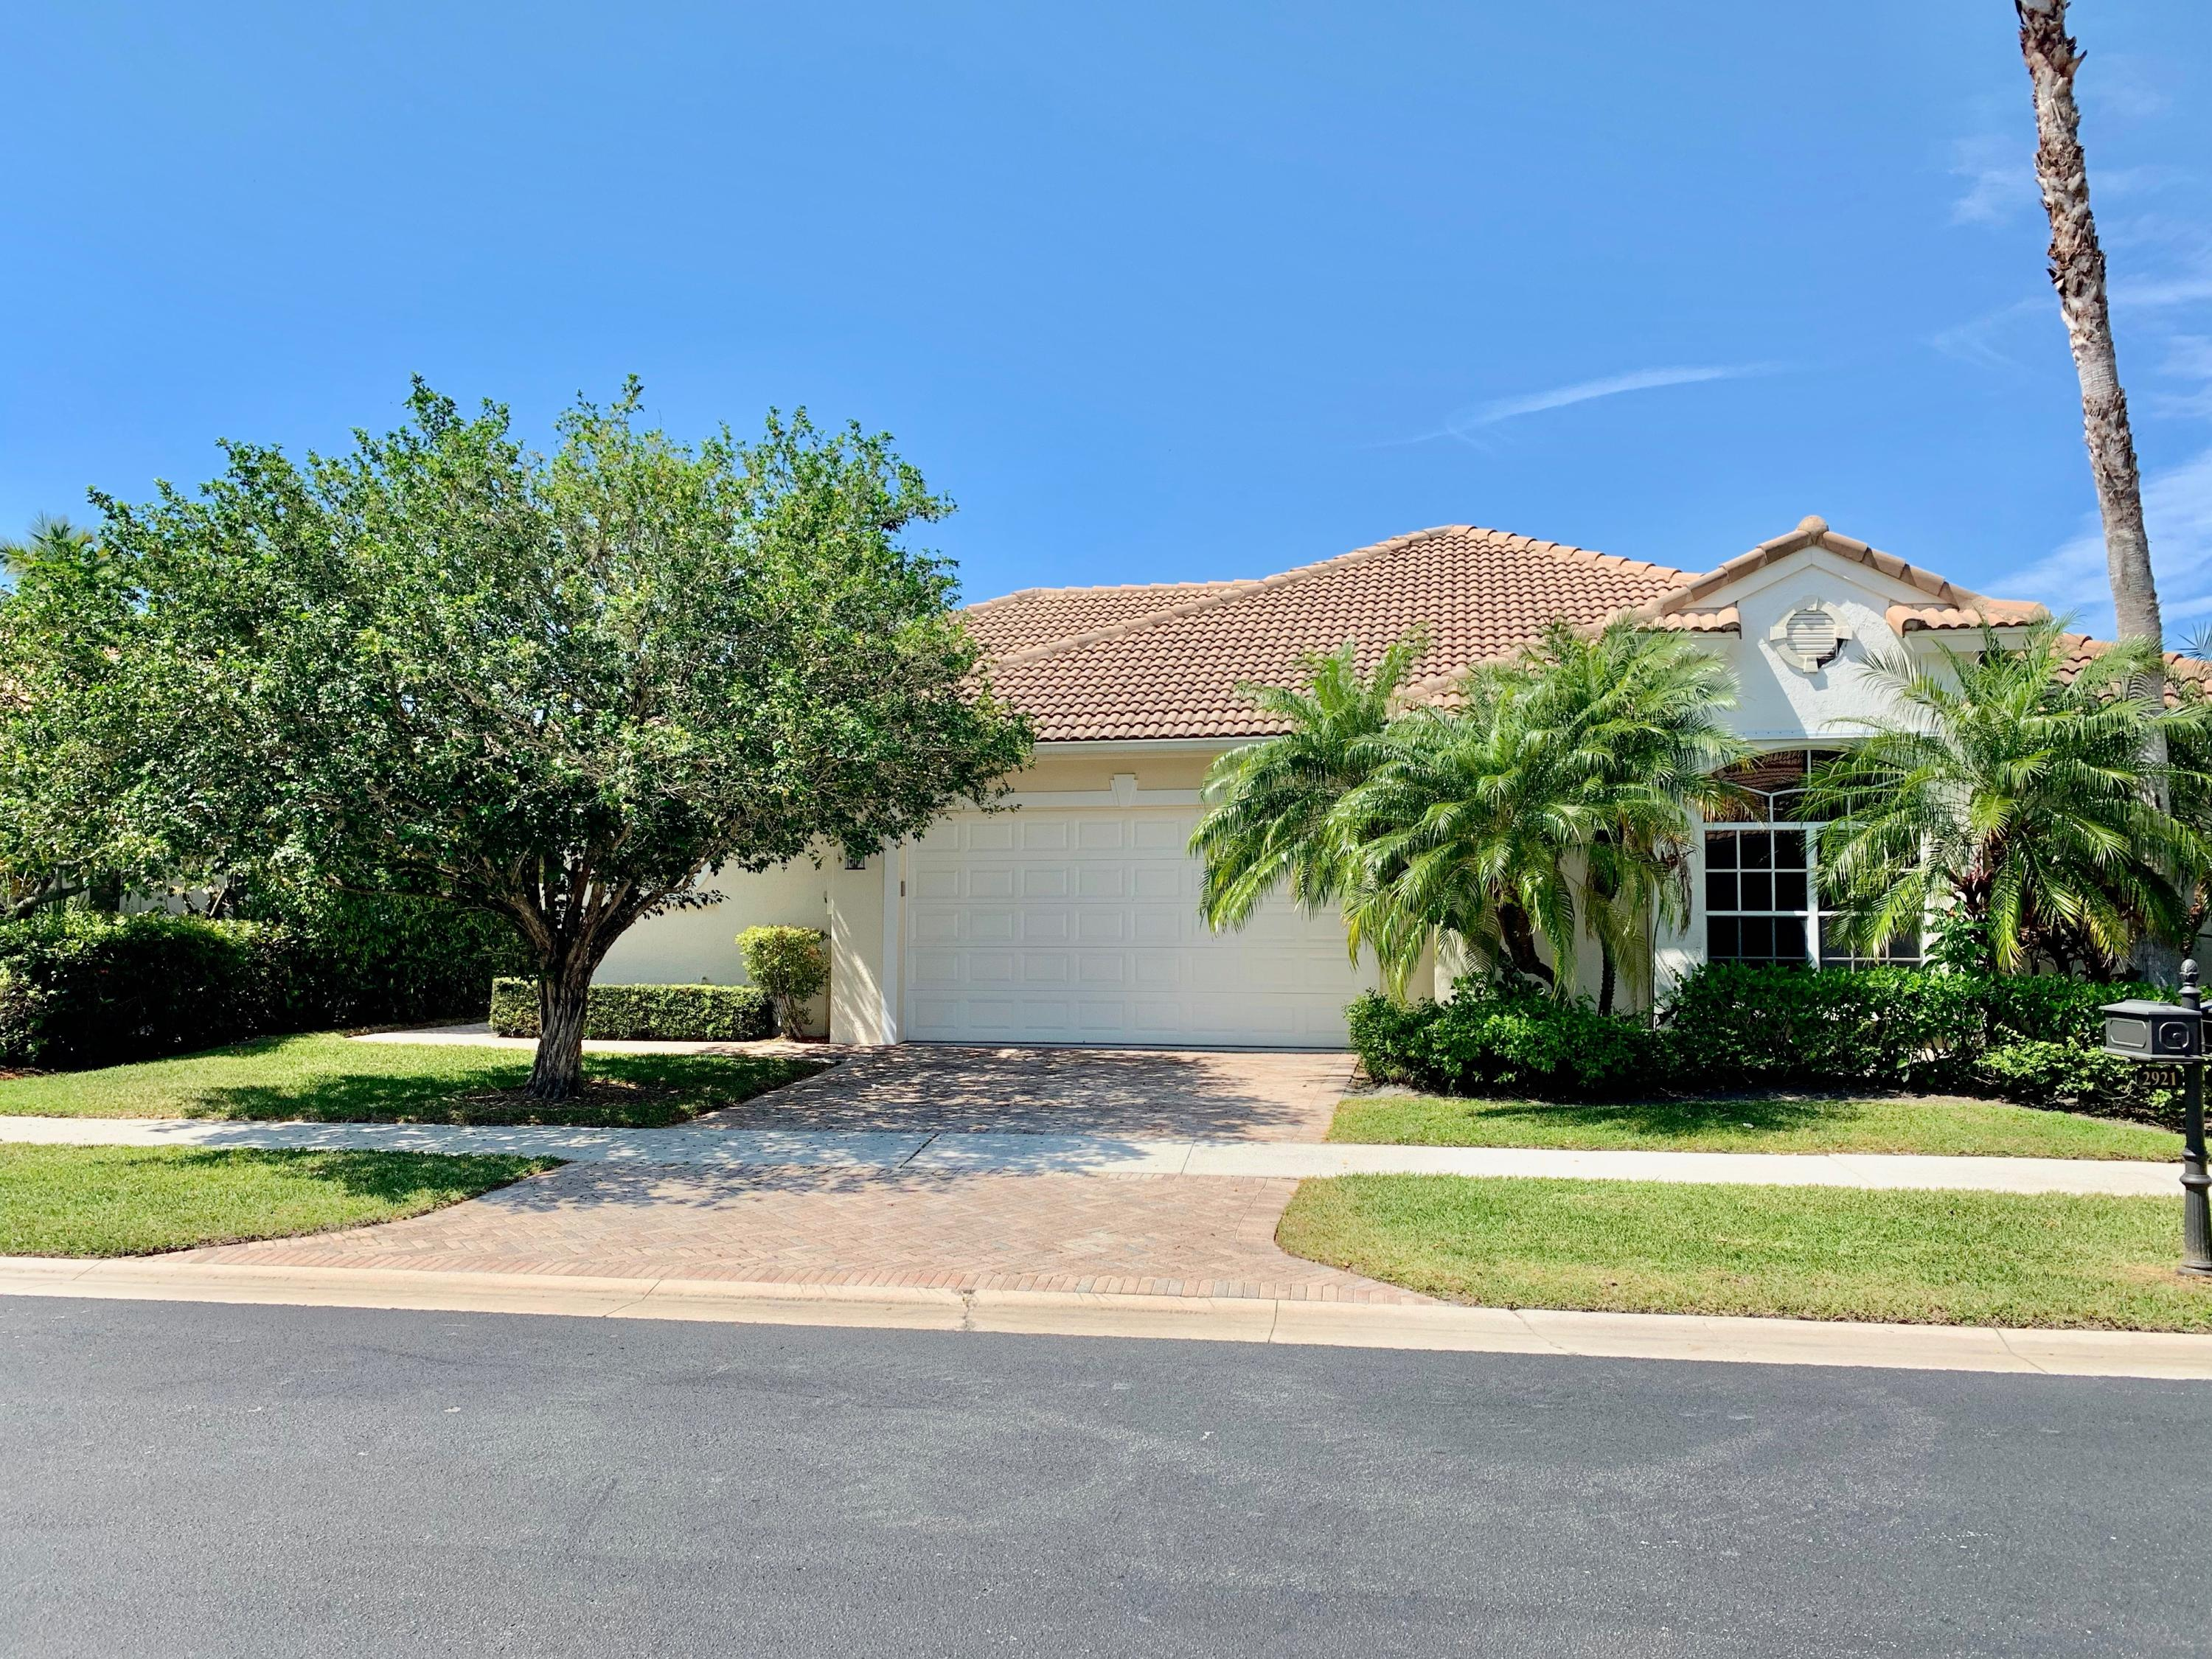 2921 Twin Oaks Way, Wellington, Florida 33414, 3 Bedrooms Bedrooms, ,3 BathroomsBathrooms,Villa,For Rent,PALM BEACH POLO,Twin Oaks,RX-10517883